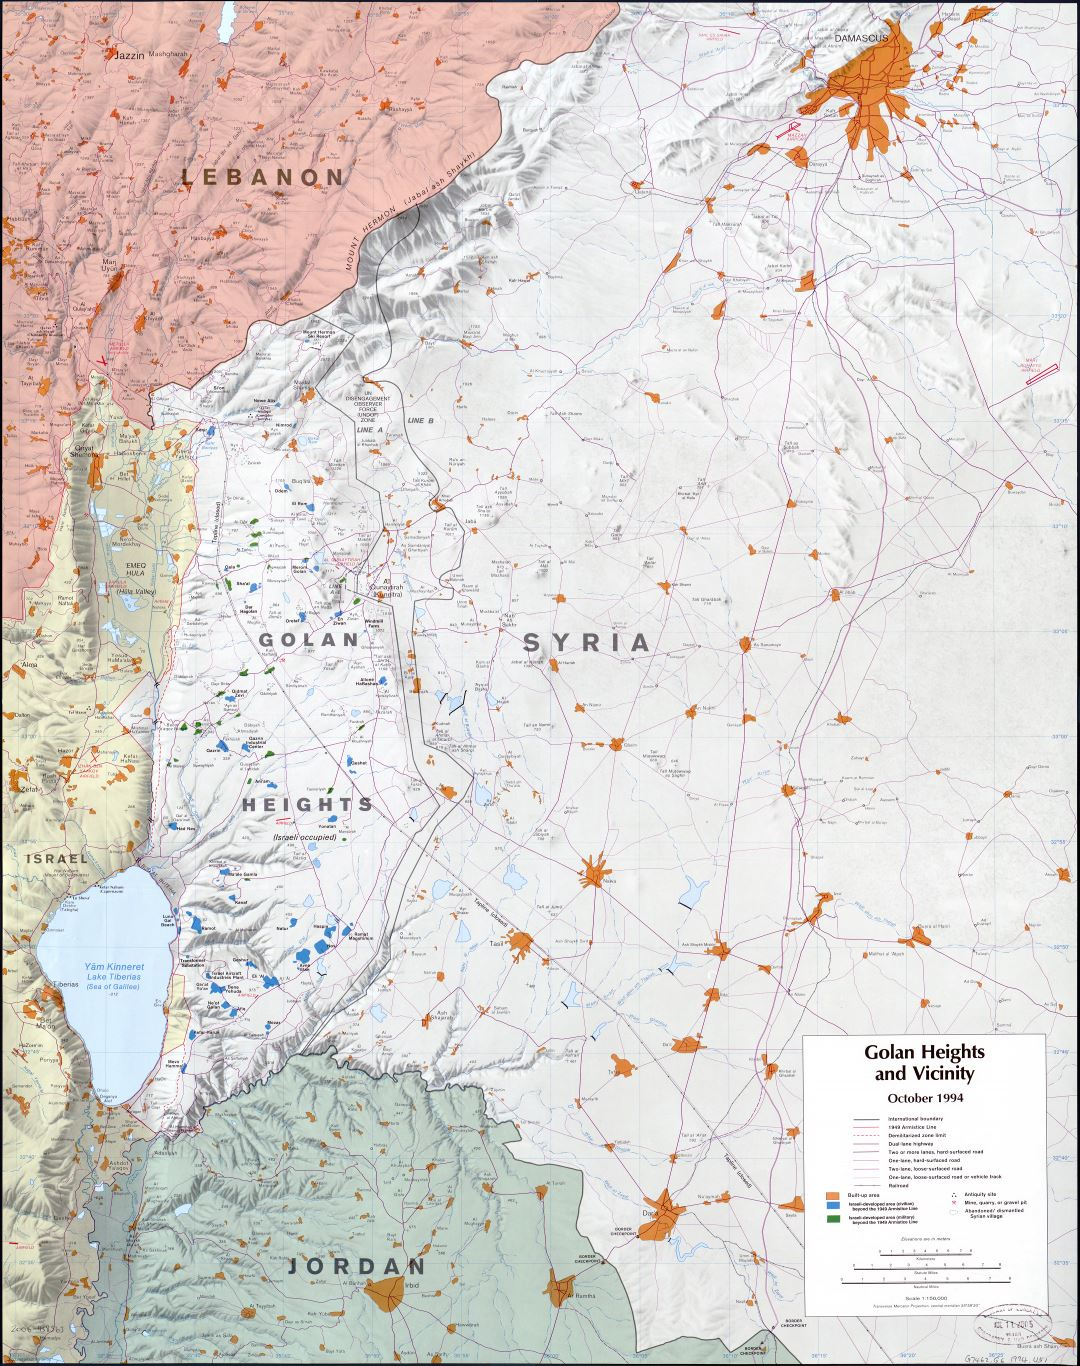 Large scale map of the Golan Heights and vicinity with relief and other marks - 1994